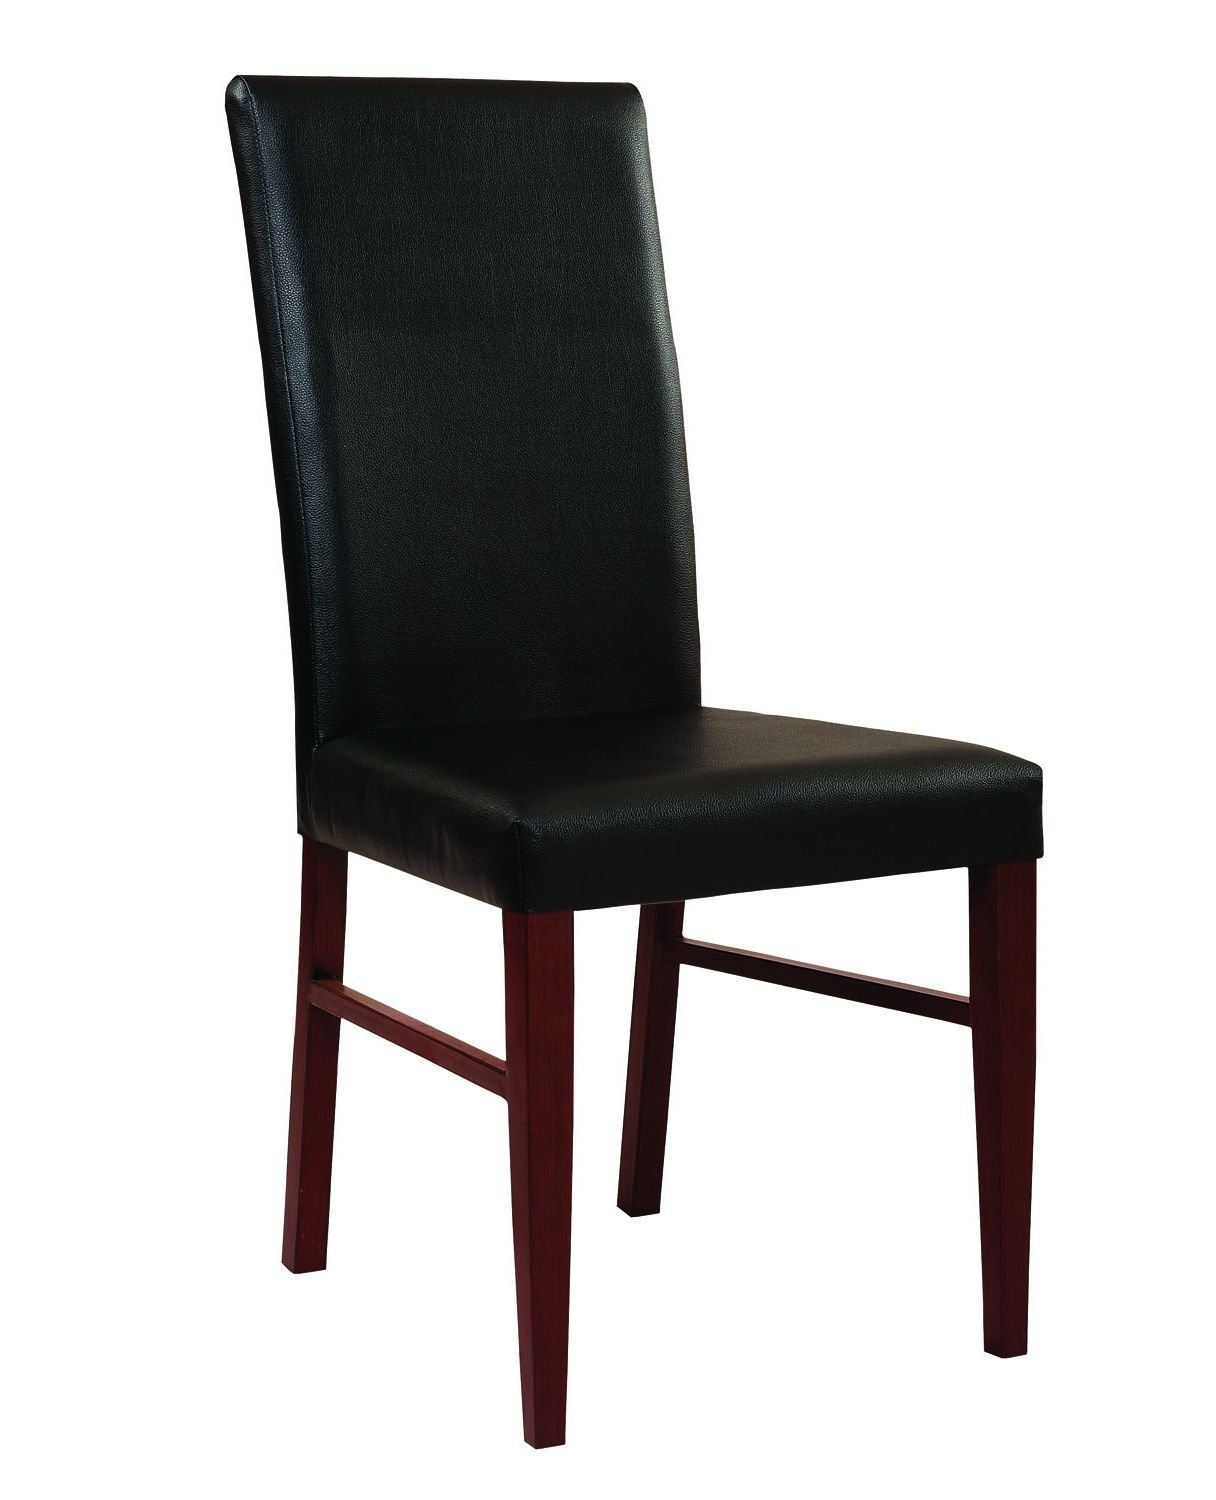 G Amp A Seating 506 Metal Silhouette Restaurant Chairs